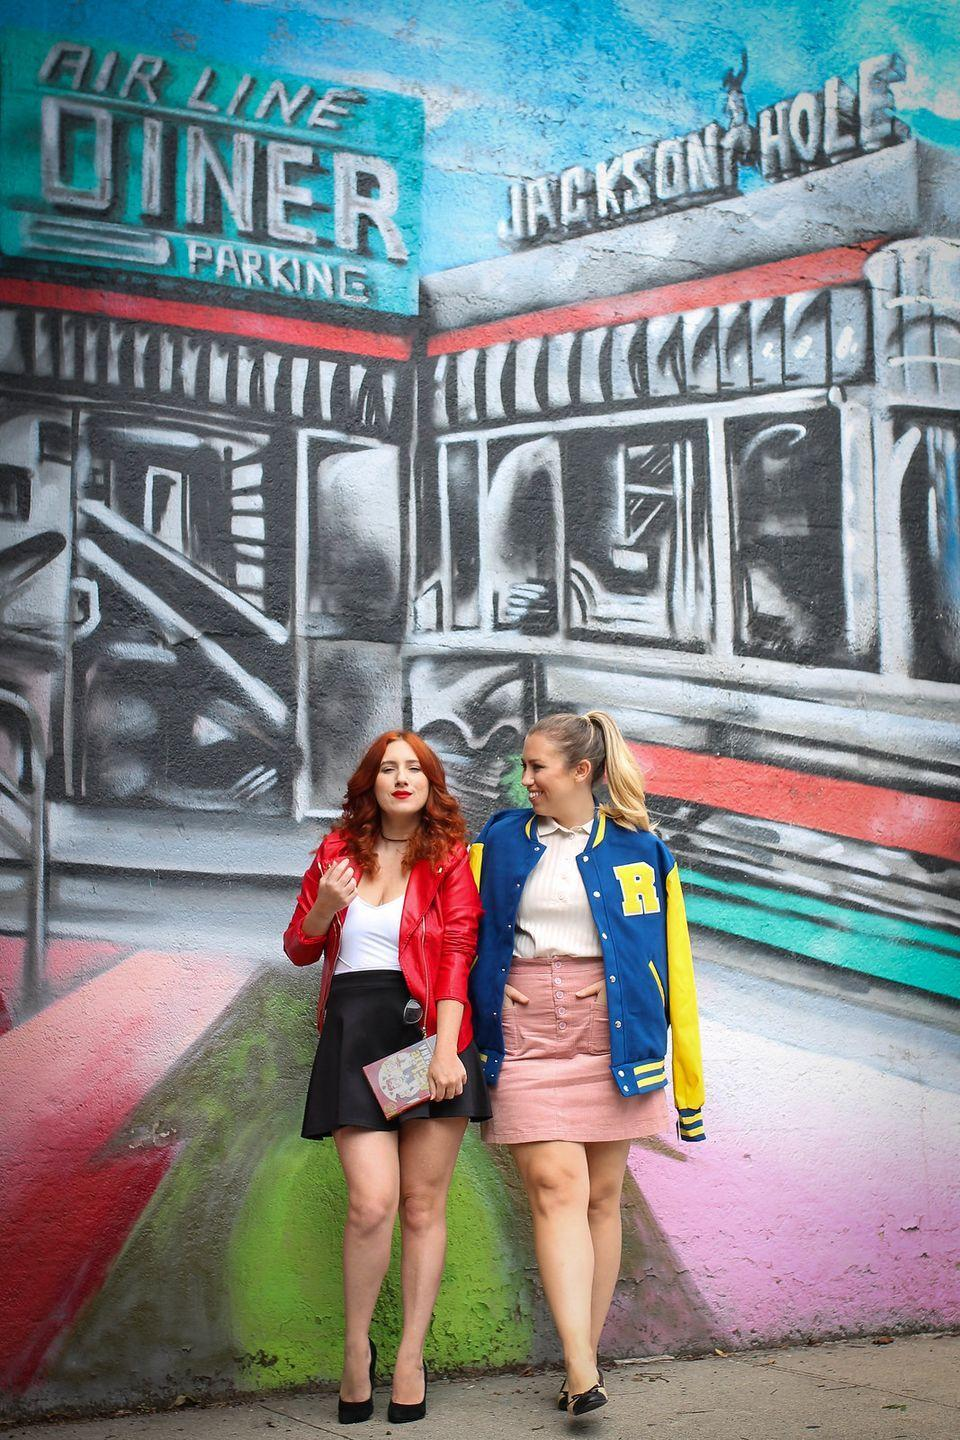 """<p><em>Riverdale</em>, the hit show based on the Archie Comics, will be returning for a fifth season this year on the CW, so now's the time for your teen to grab her bestie and make like Betty and Cheryl. </p><p><strong>Get the tutorial at <a href=""""http://livingaftermidnite.com/2018/10/easy-riverdale-halloween-costumes.html"""" rel=""""nofollow noopener"""" target=""""_blank"""" data-ylk=""""slk:Living After Midnight"""" class=""""link rapid-noclick-resp"""">Living After Midnight</a>.</strong></p><p><a class=""""link rapid-noclick-resp"""" href=""""https://www.amazon.com/Spirit-Halloween-Riverdale-Varsity-Jacket/dp/B07BVPXLBQ?tag=syn-yahoo-20&ascsubtag=%5Bartid%7C10050.g.22118522%5Bsrc%7Cyahoo-us"""" rel=""""nofollow noopener"""" target=""""_blank"""" data-ylk=""""slk:SHOP RIVERDALE VARSITY JACKET"""">SHOP RIVERDALE VARSITY JACKET</a></p>"""